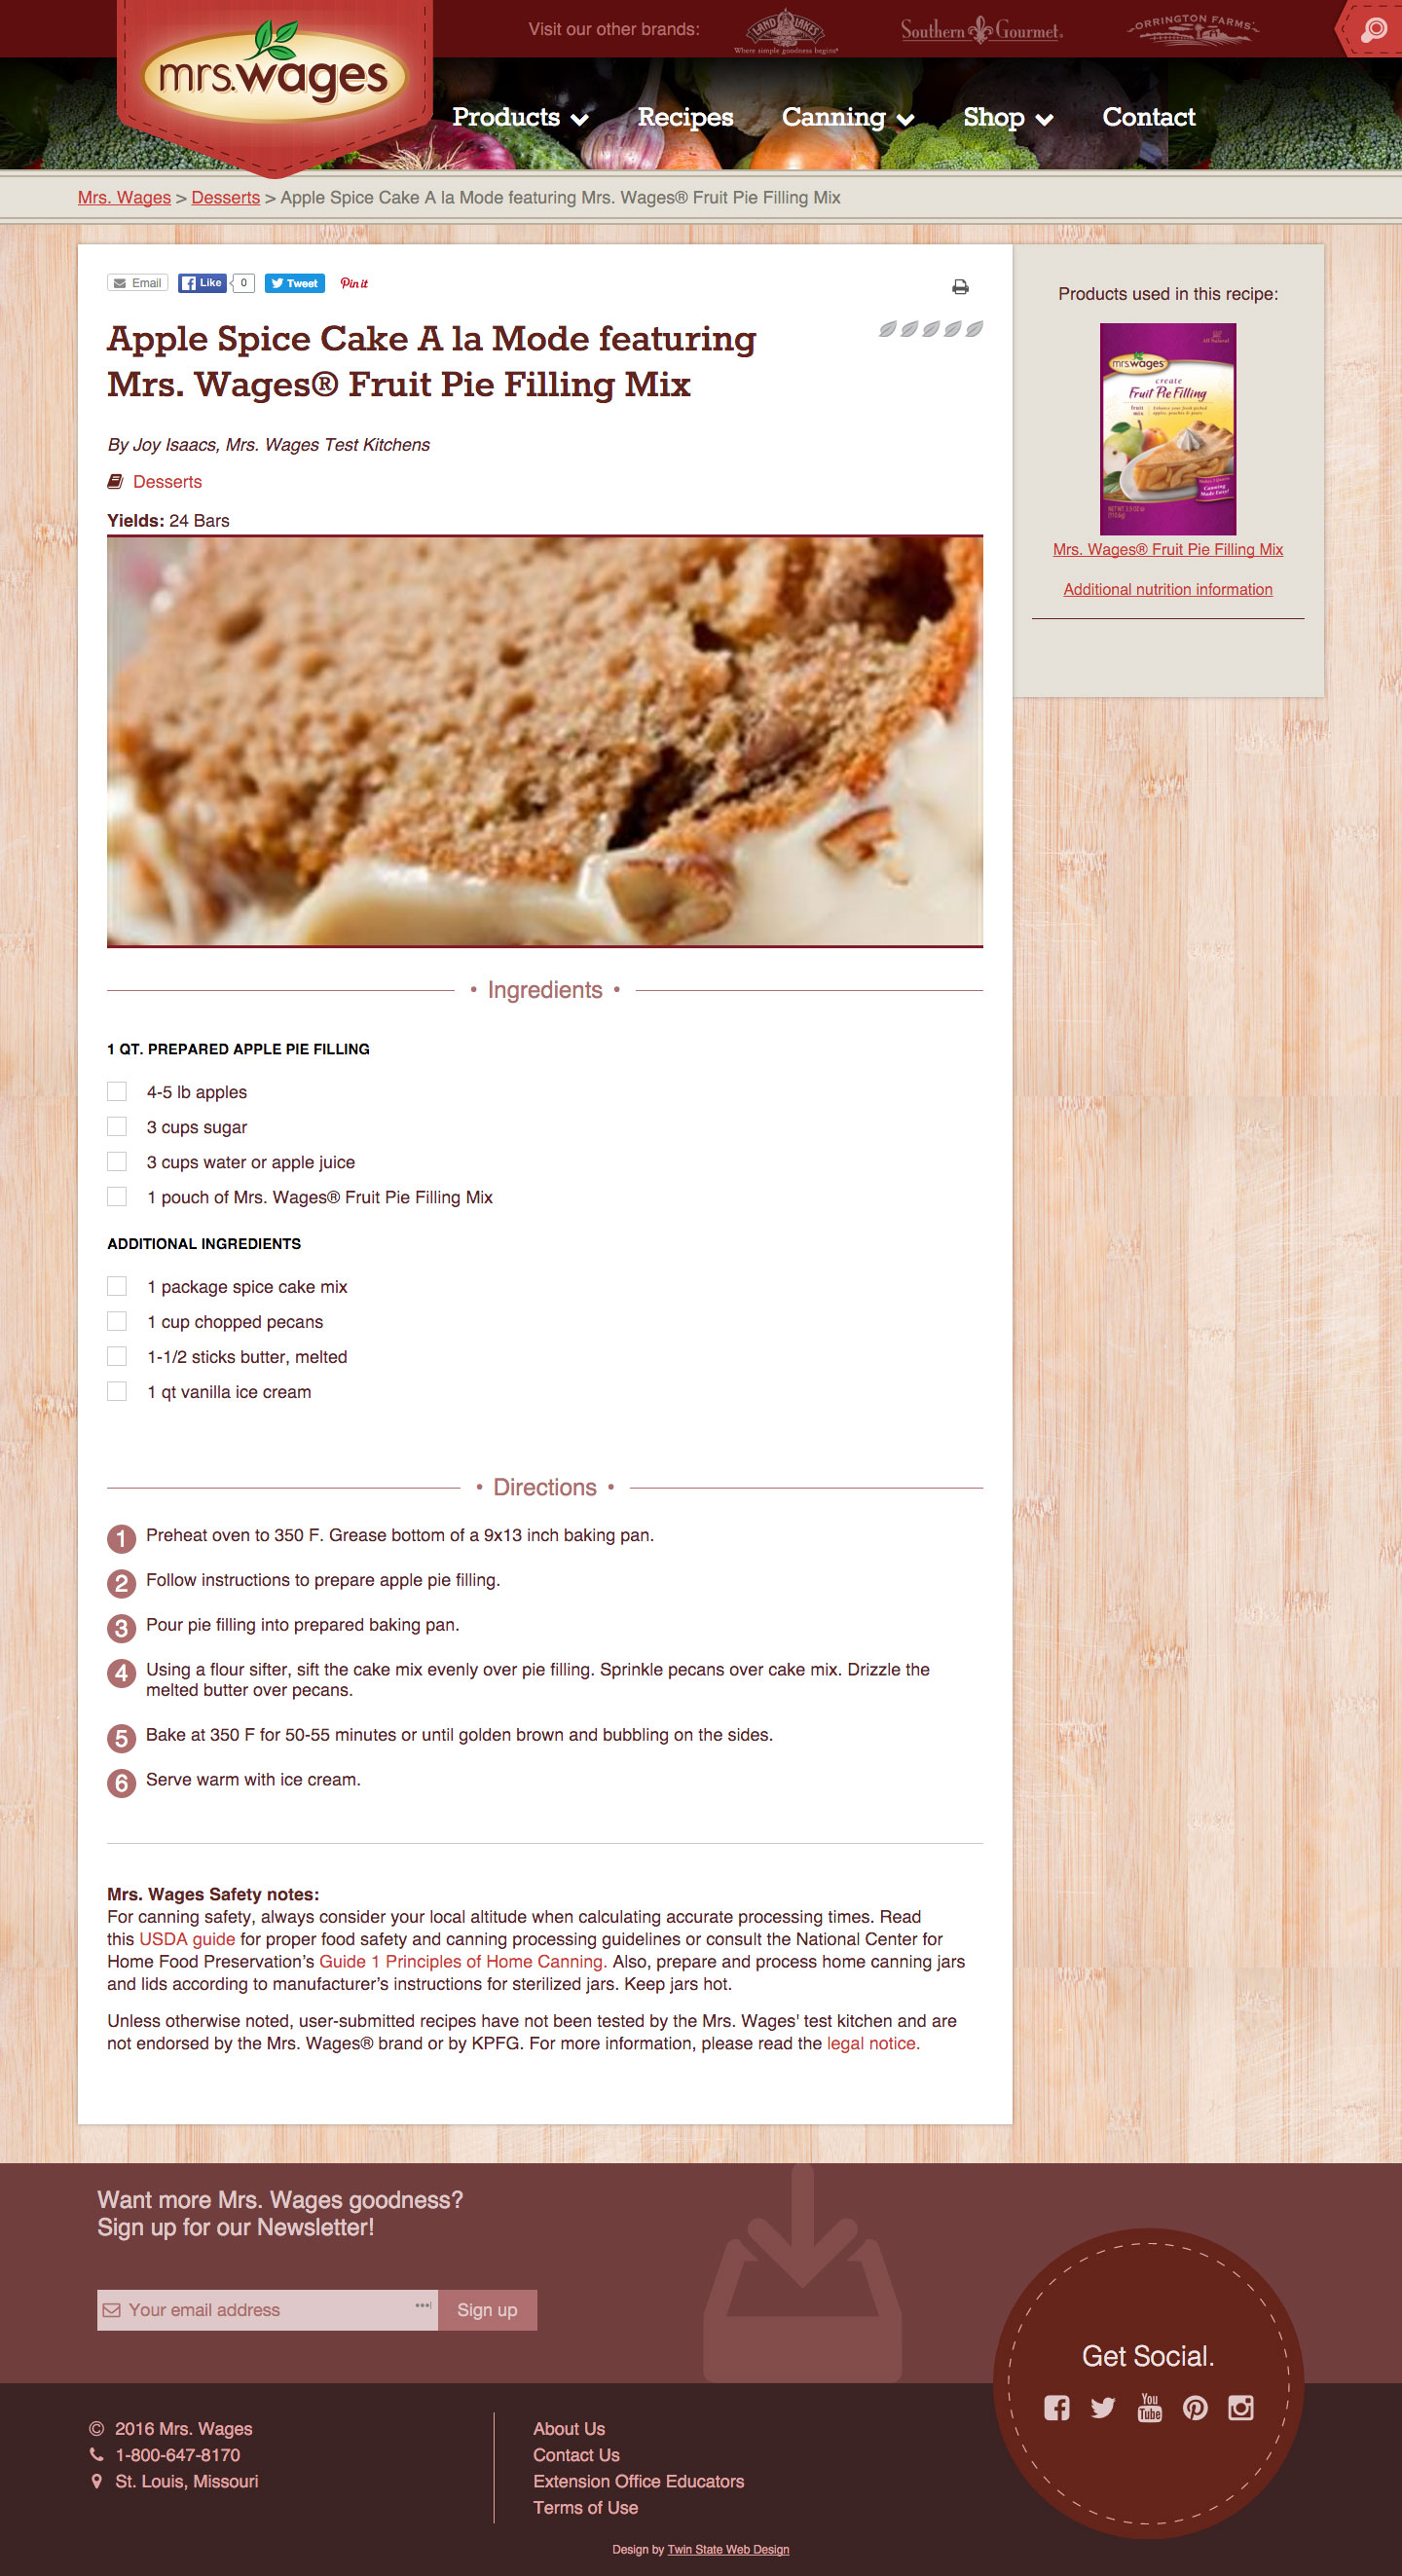 Mrs. Wages Desktop recipe page Screen shot